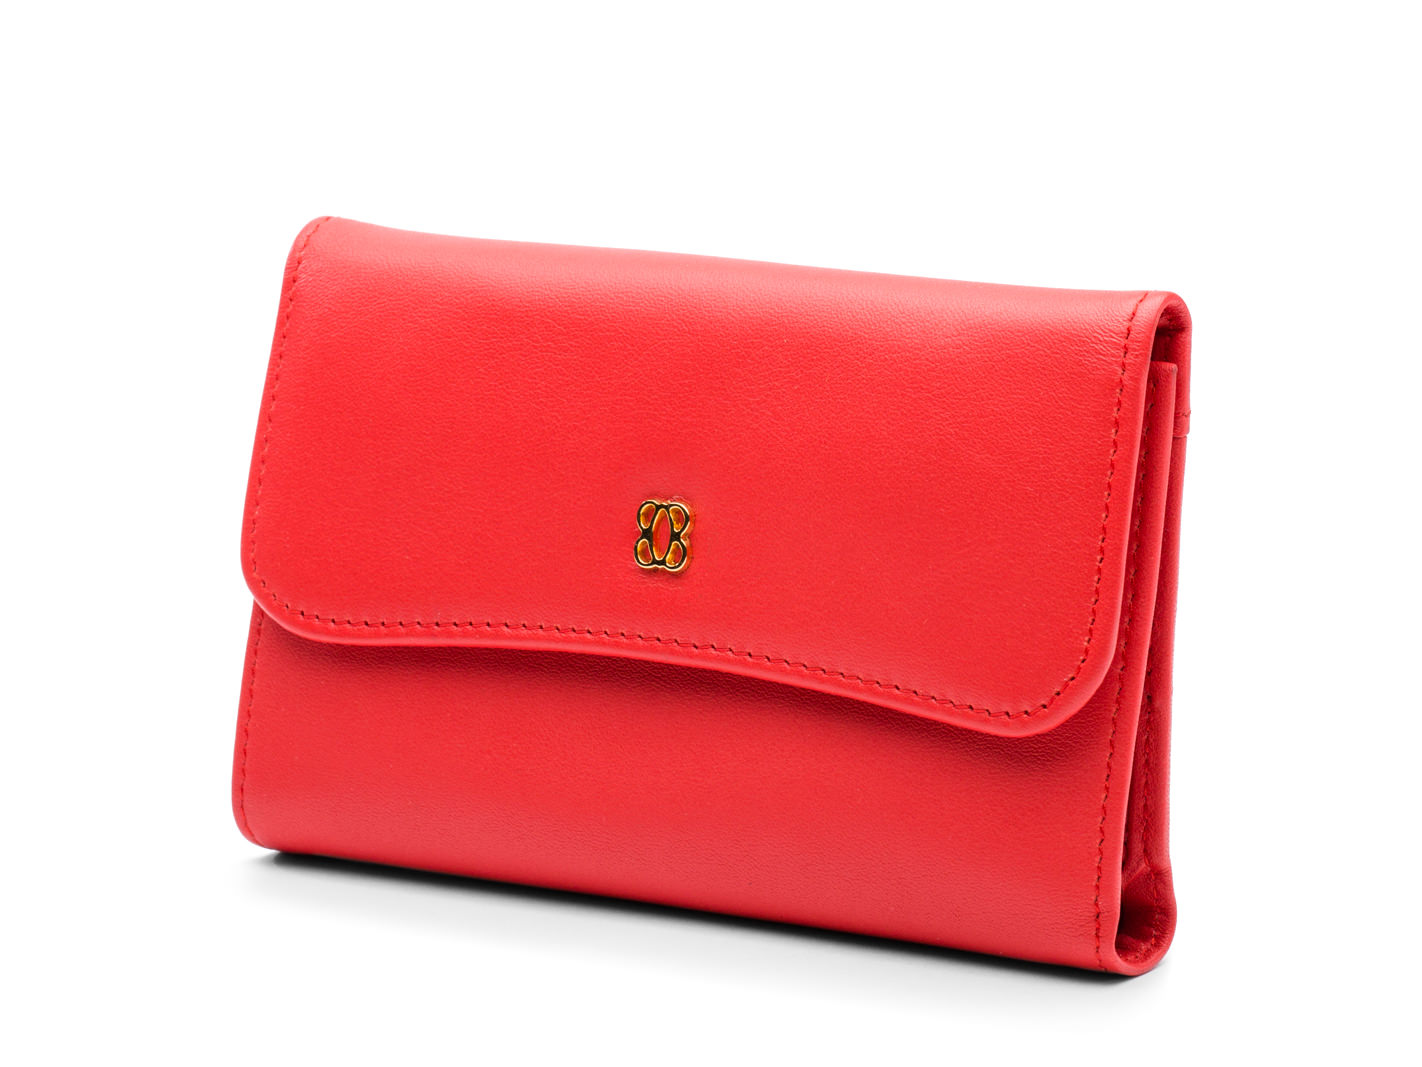 Coral ID French Purse-611 Coral - 611 Coral